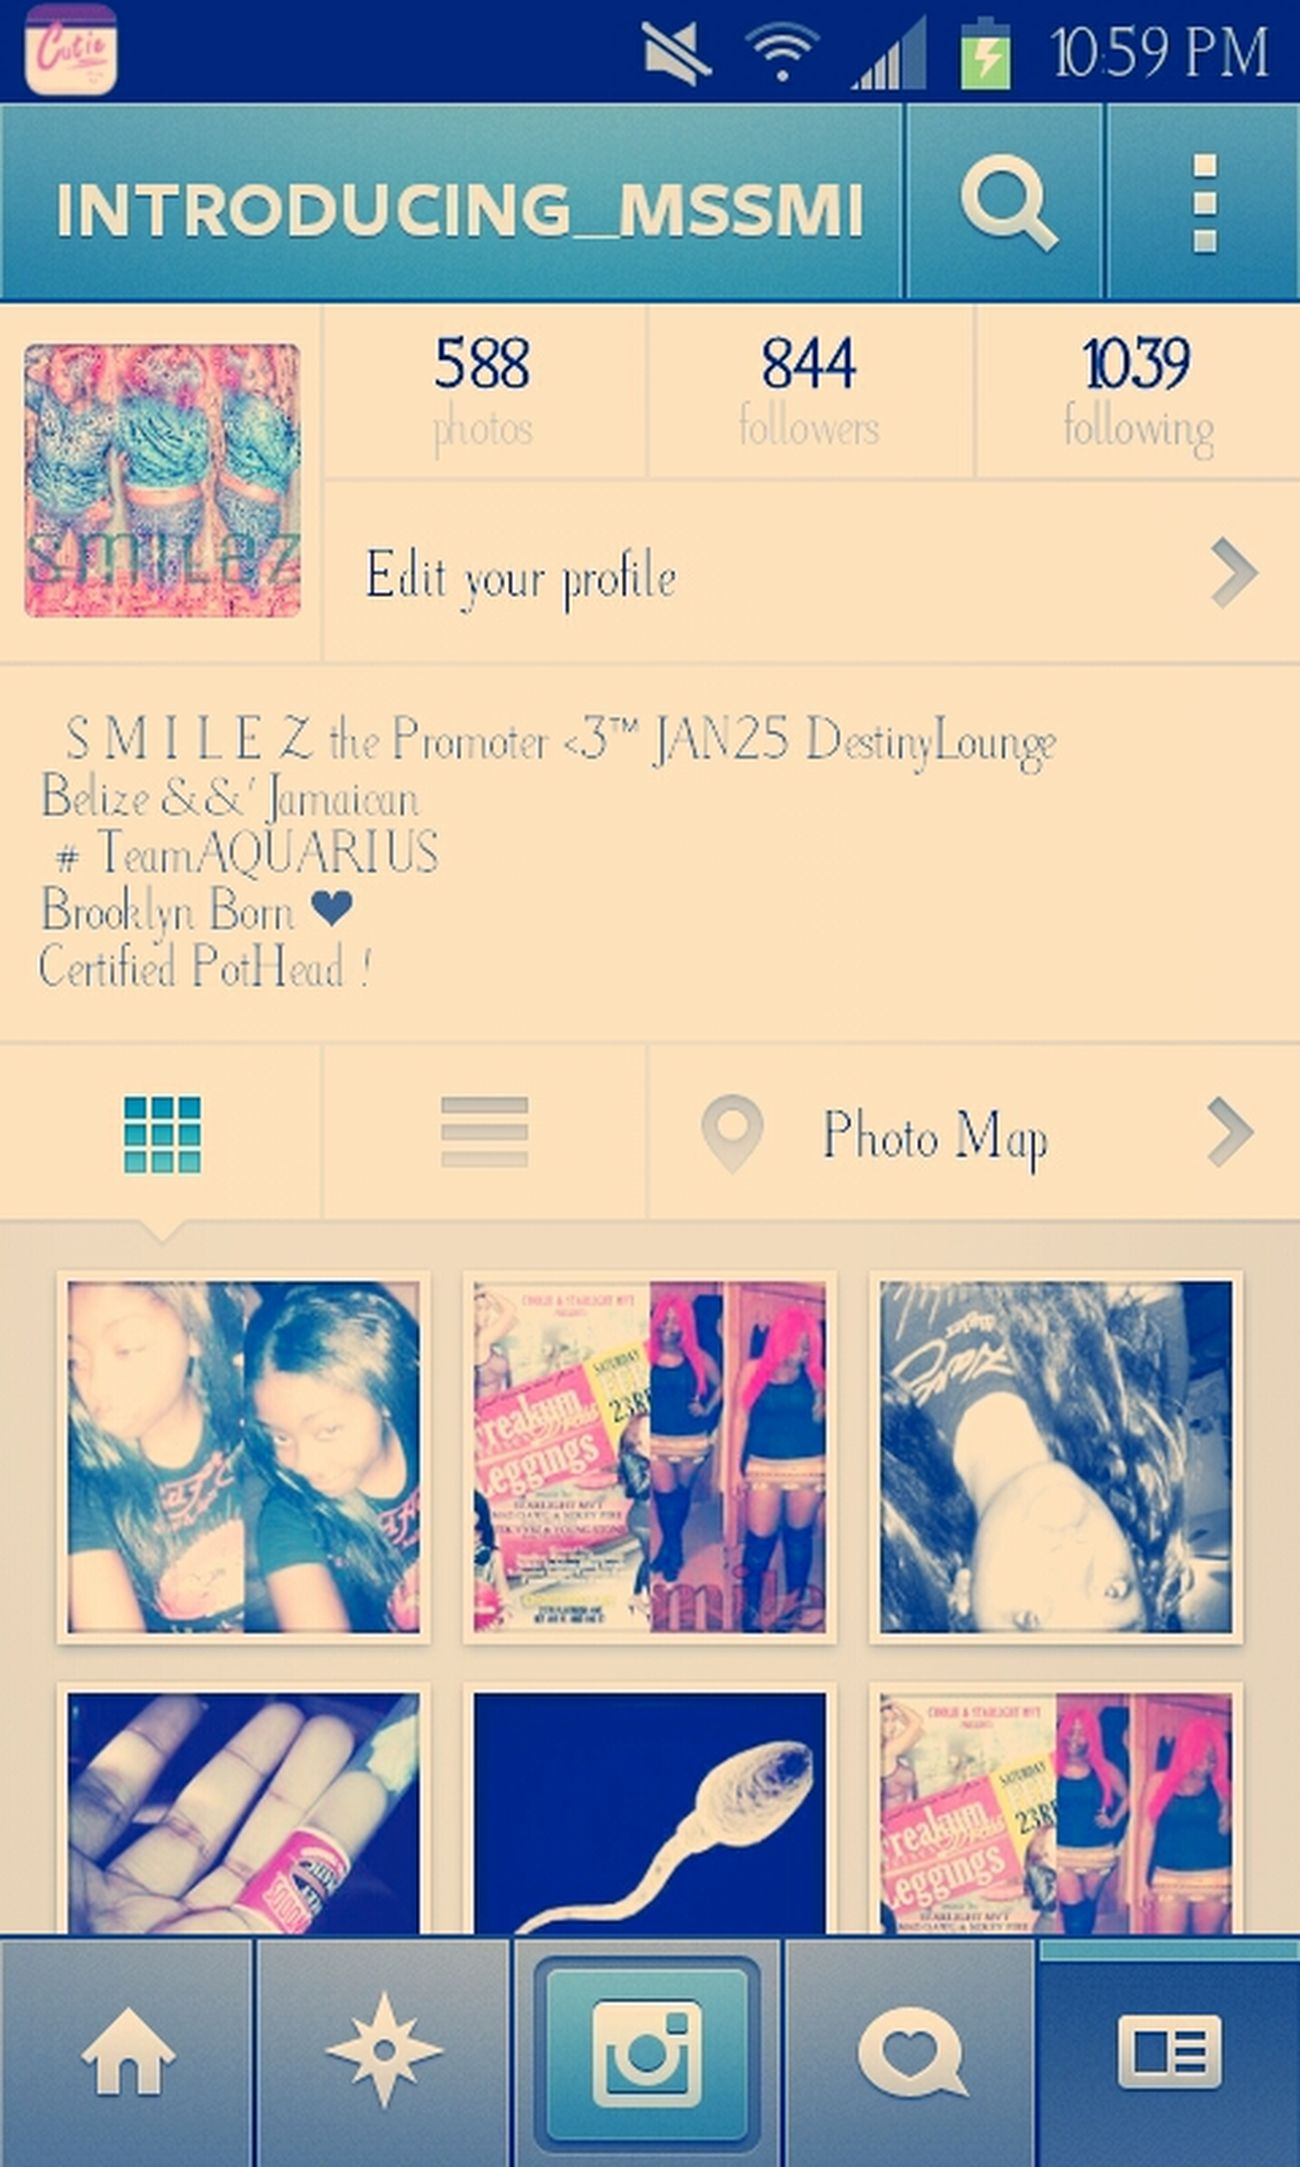 Instagram: Introducing_MsSmilez <3 ™